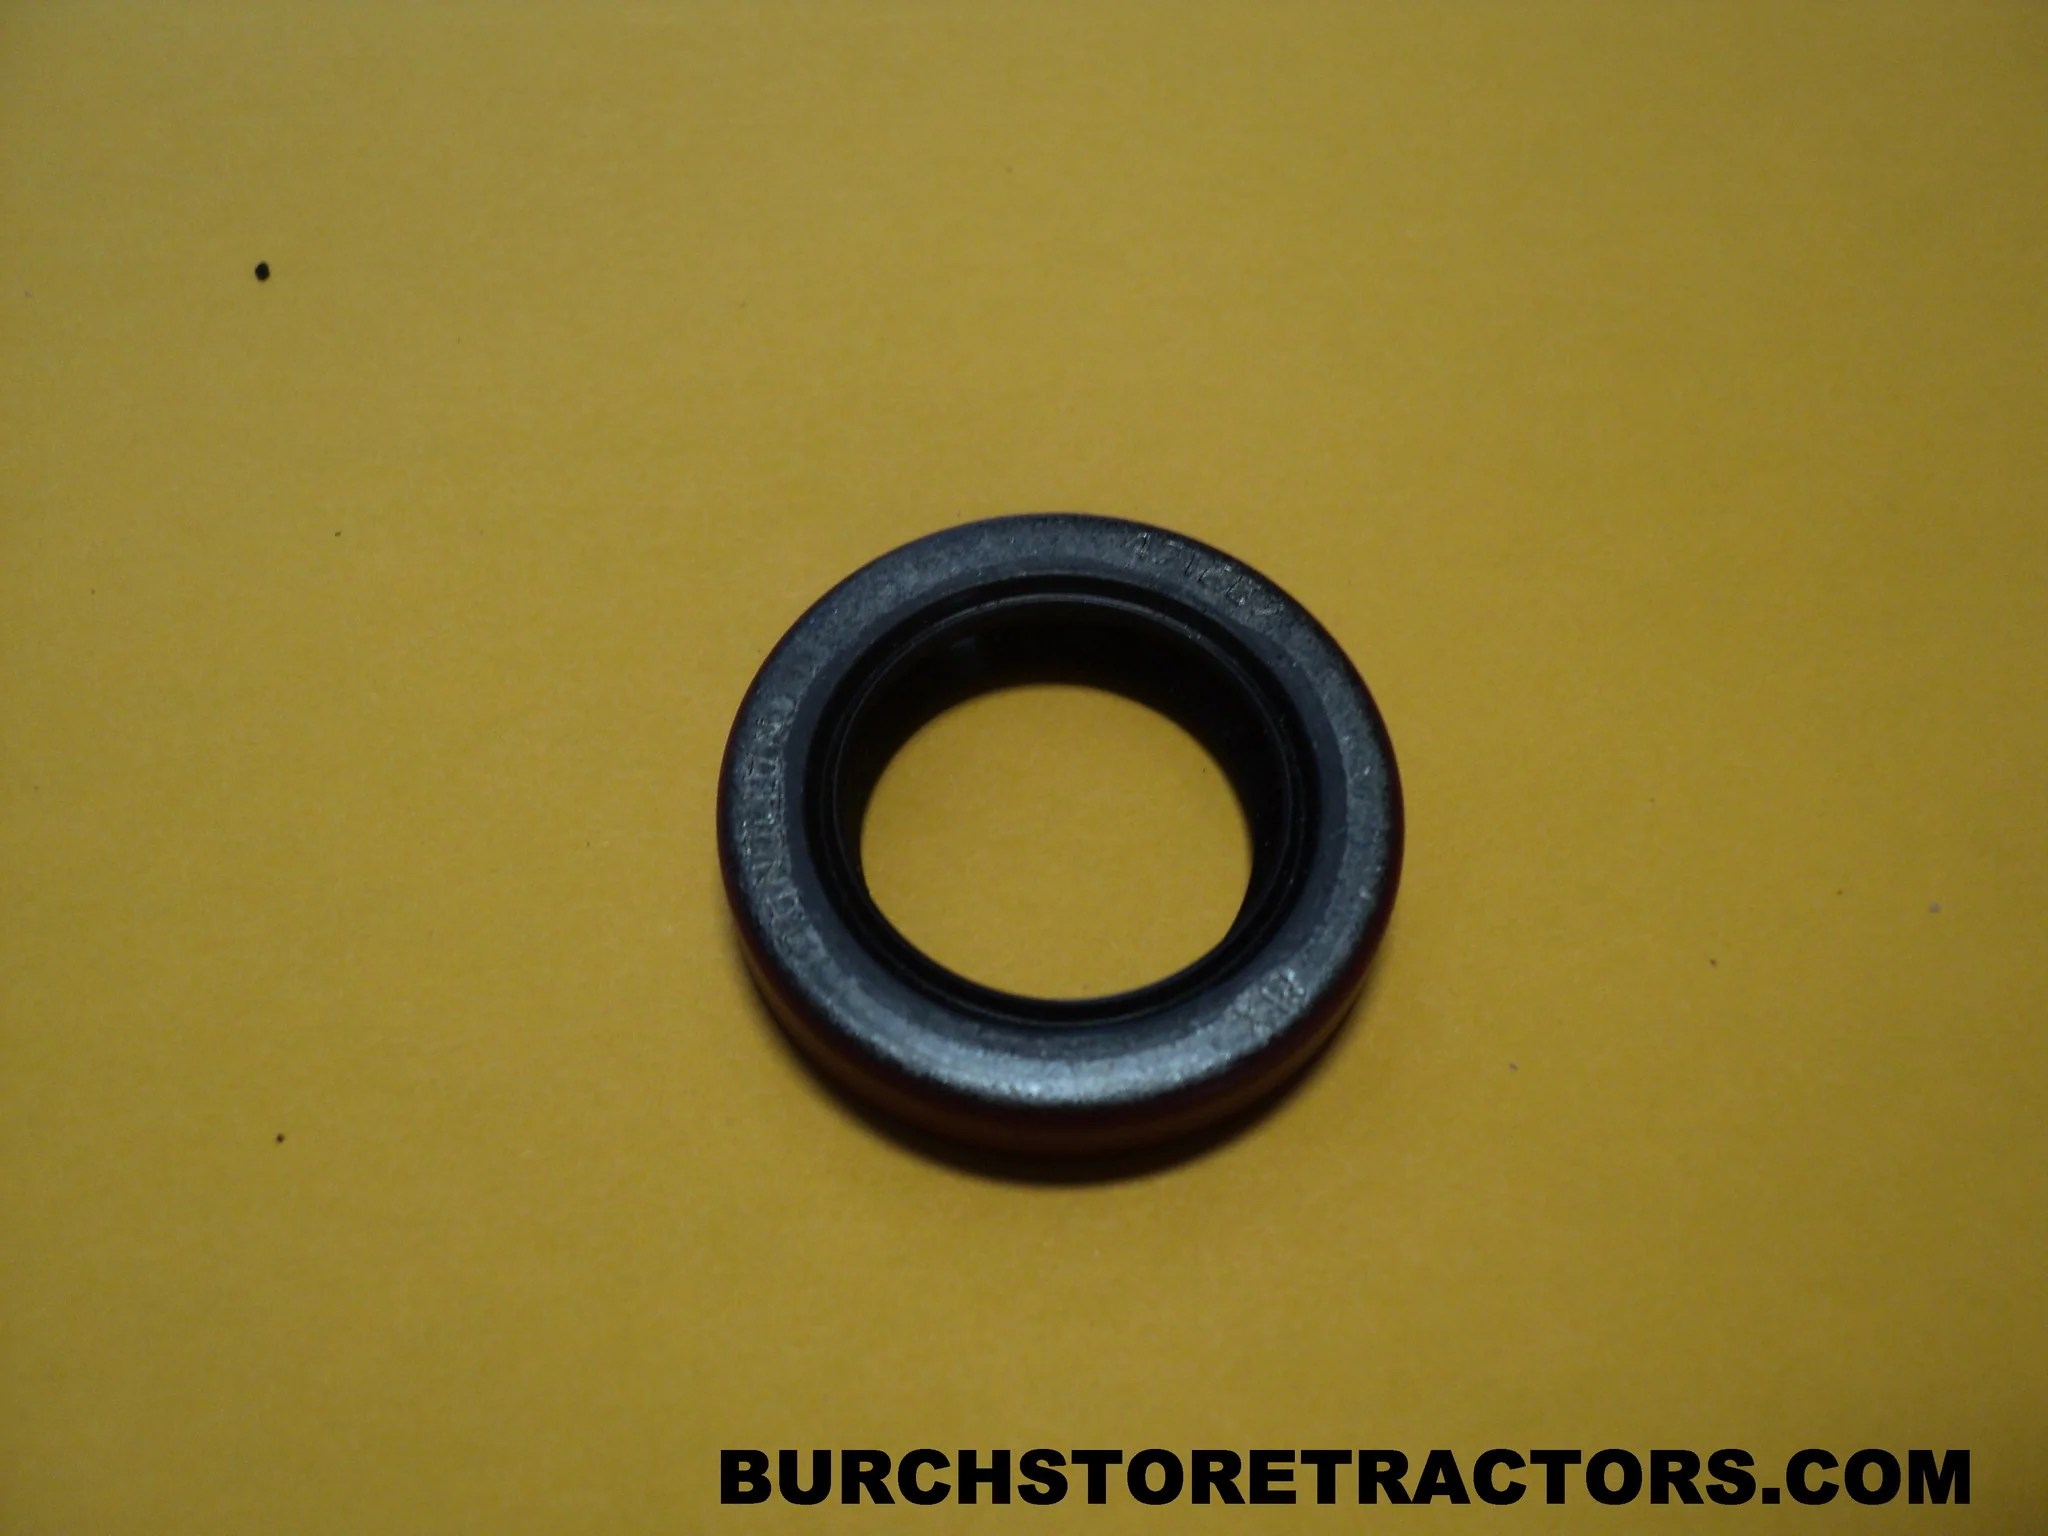 new top steering shaft oil seal for ih farmall cub or cub loboy tracto burch store tractors [ 2048 x 1536 Pixel ]